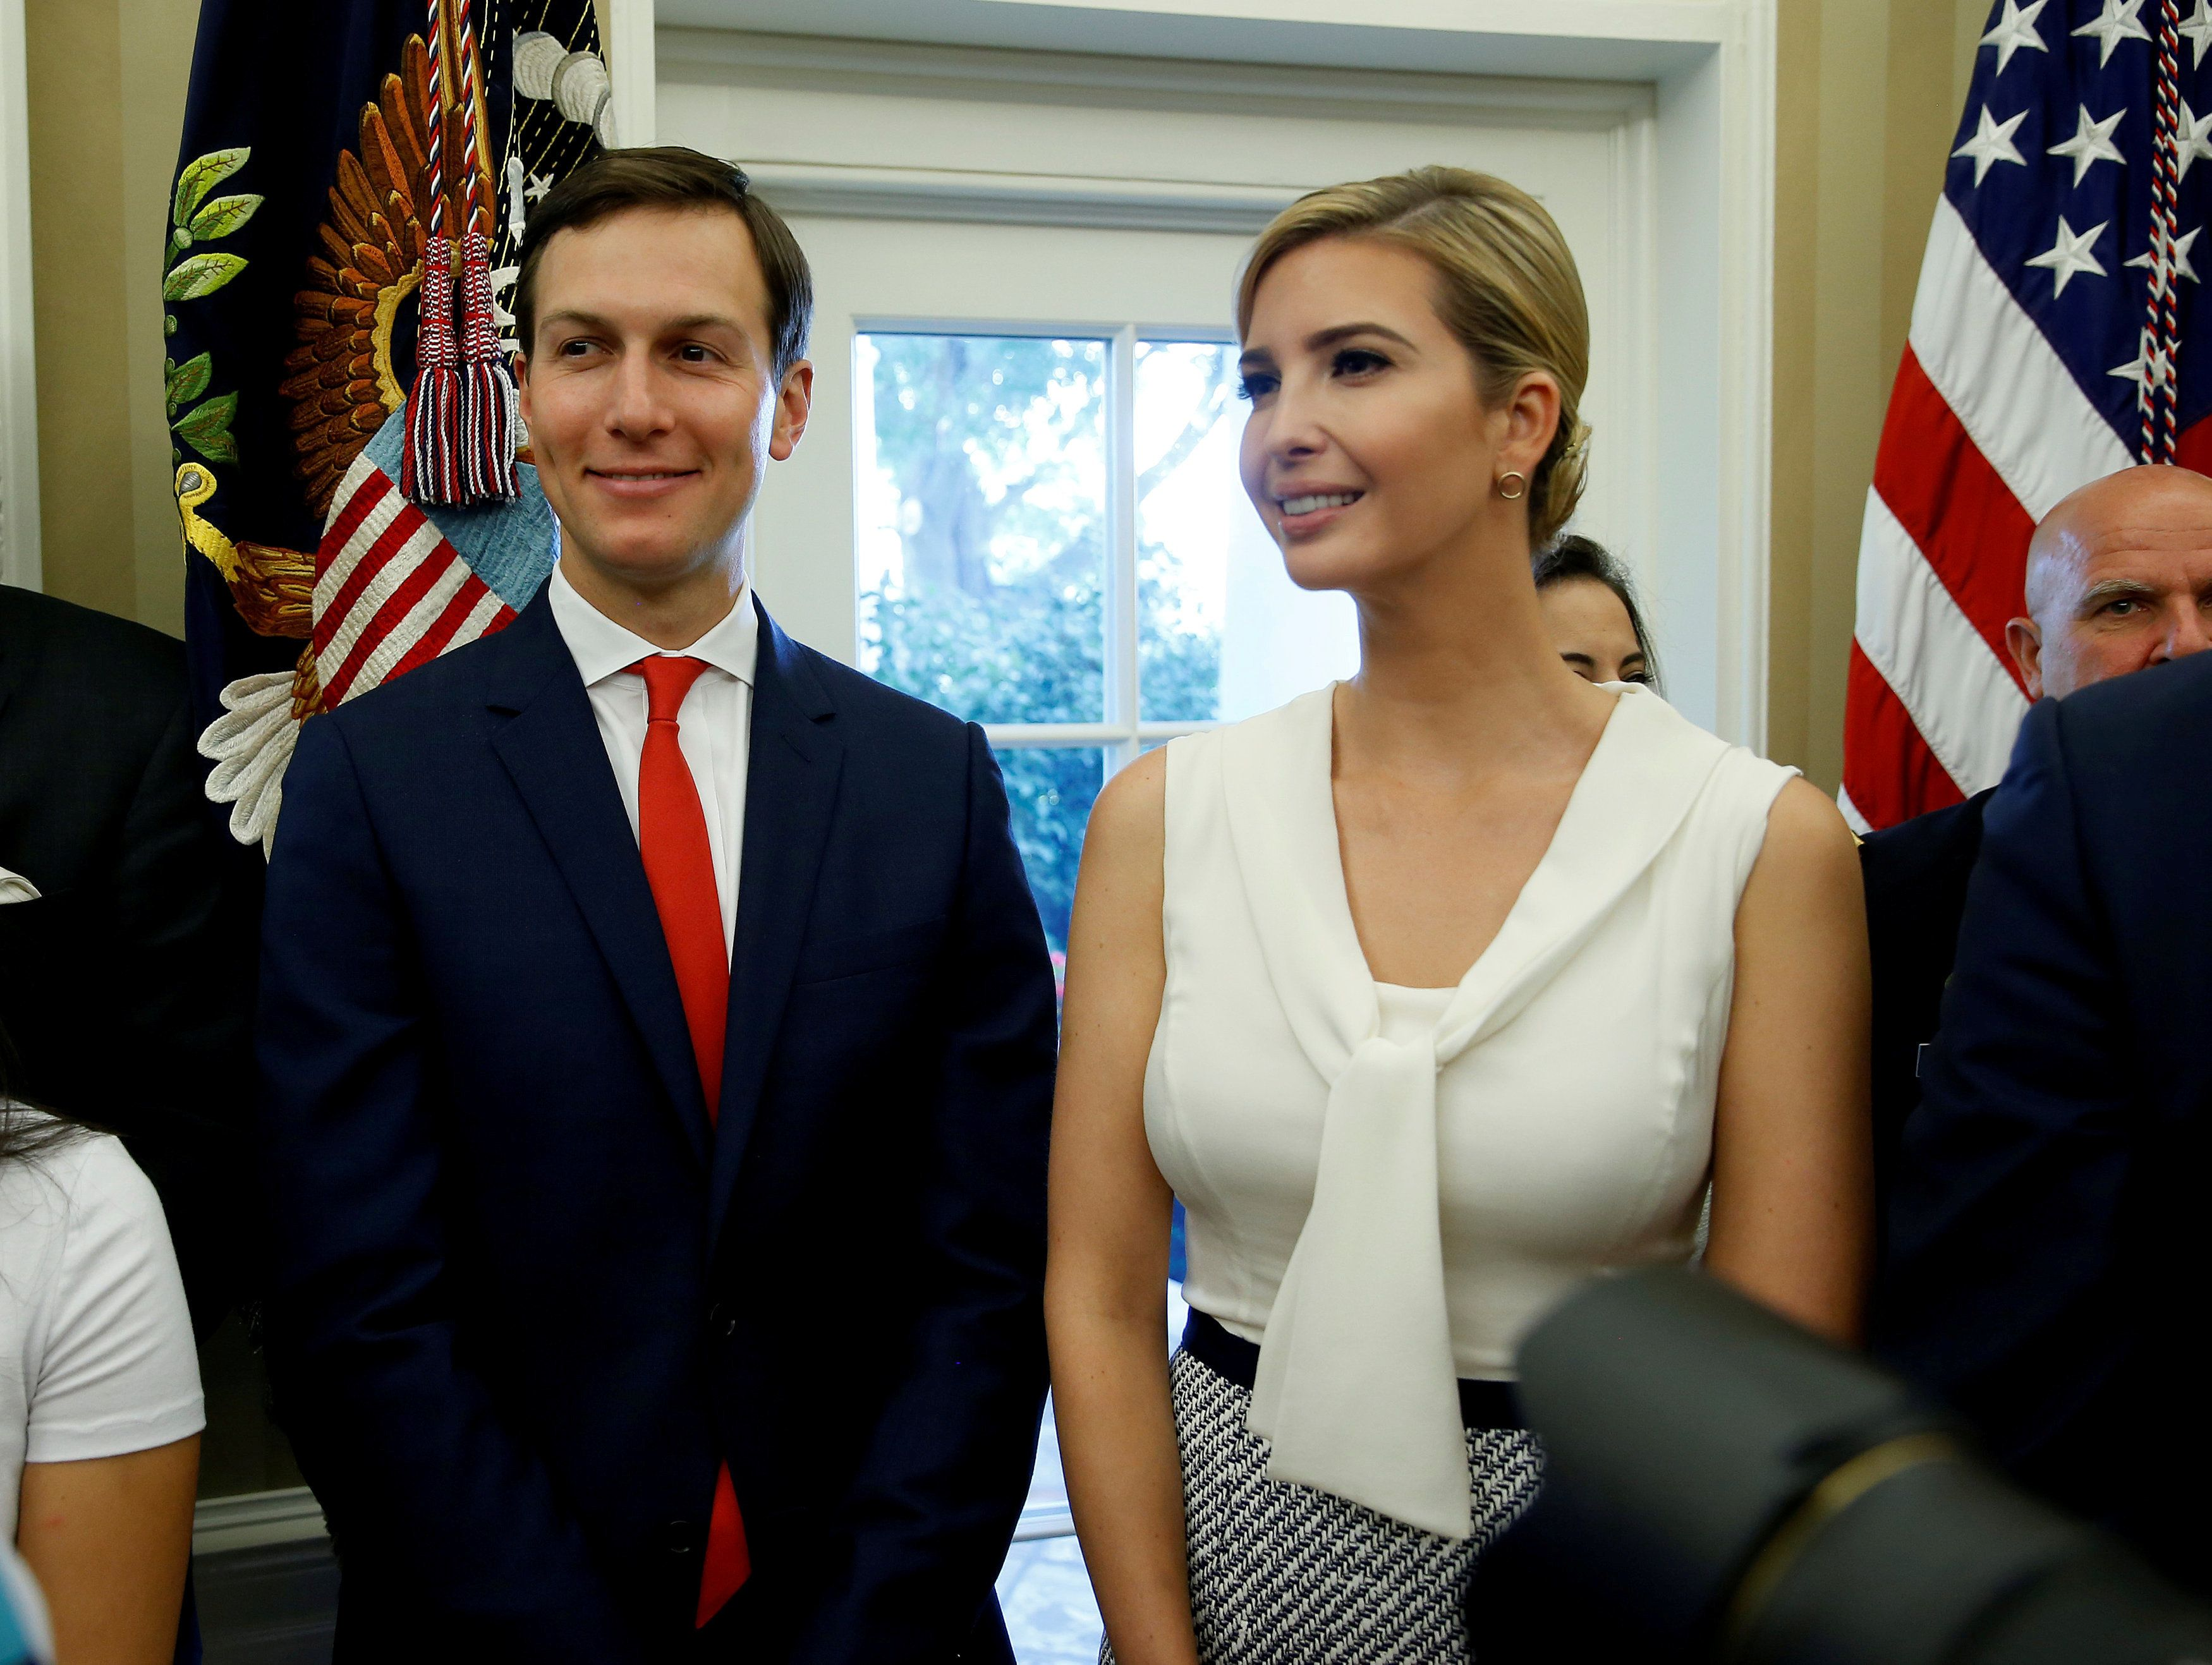 Jared Kushner and Ivanka Trump in the Oval Office in July of this